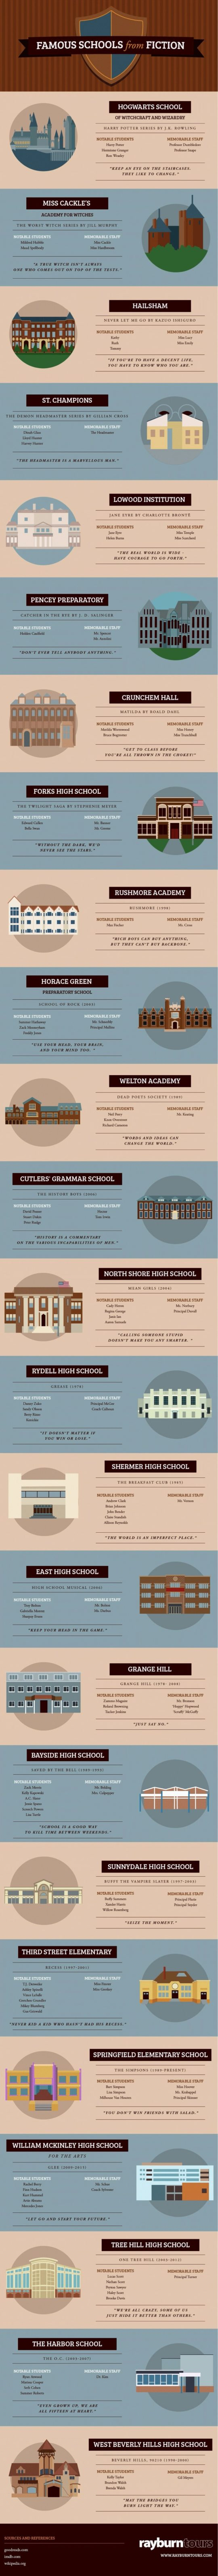 Hogwarts and other famous schools from fiction - full infographic